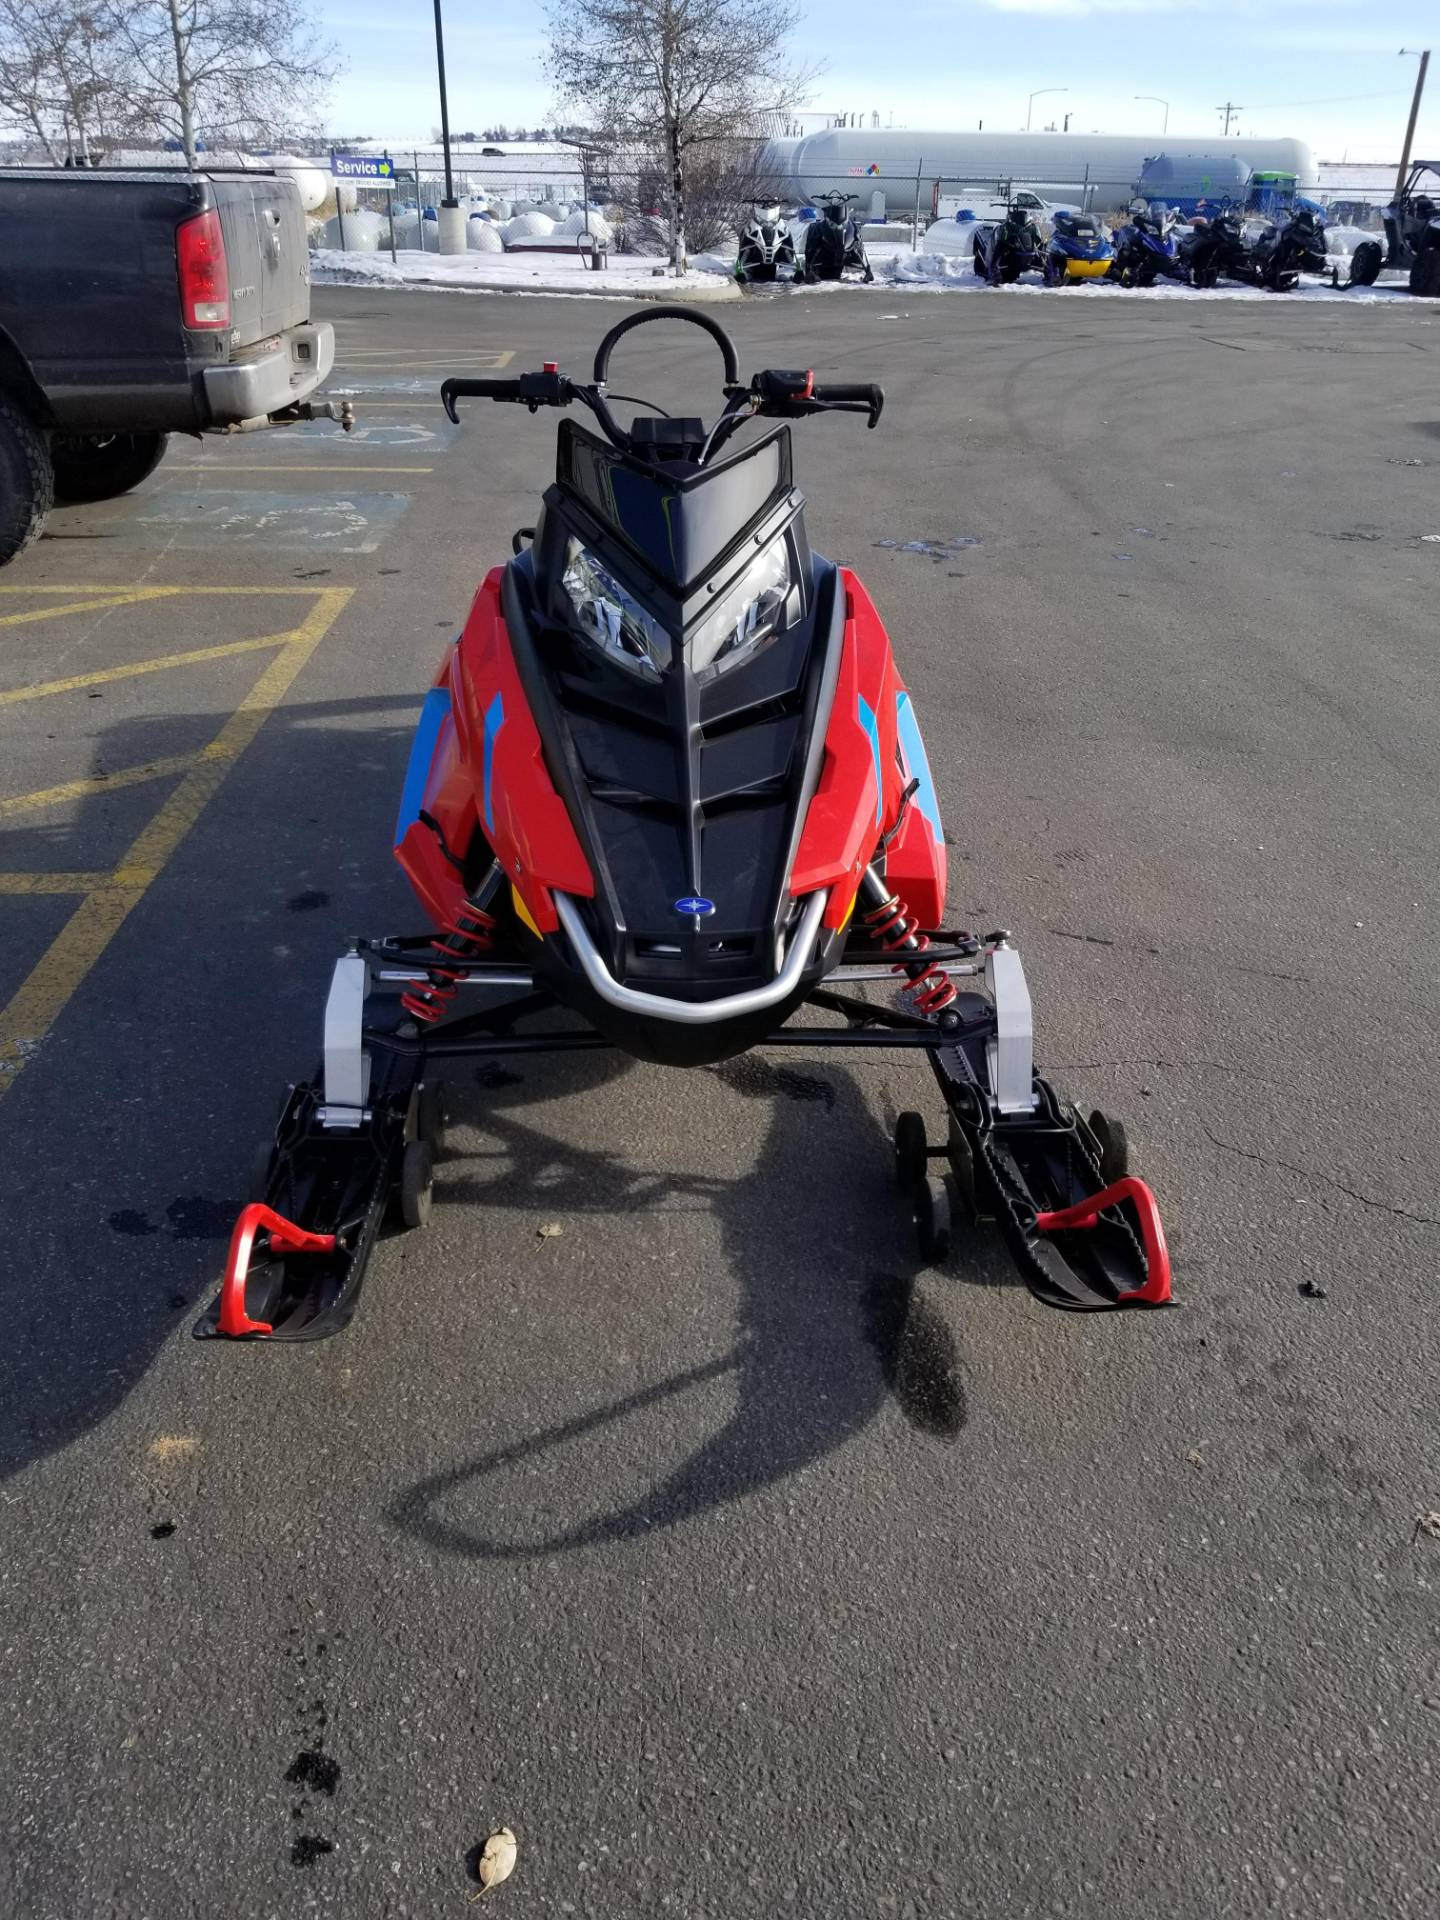 2020 Polaris 550 RMK EVO 144 ES in Rexburg, Idaho - Photo 4